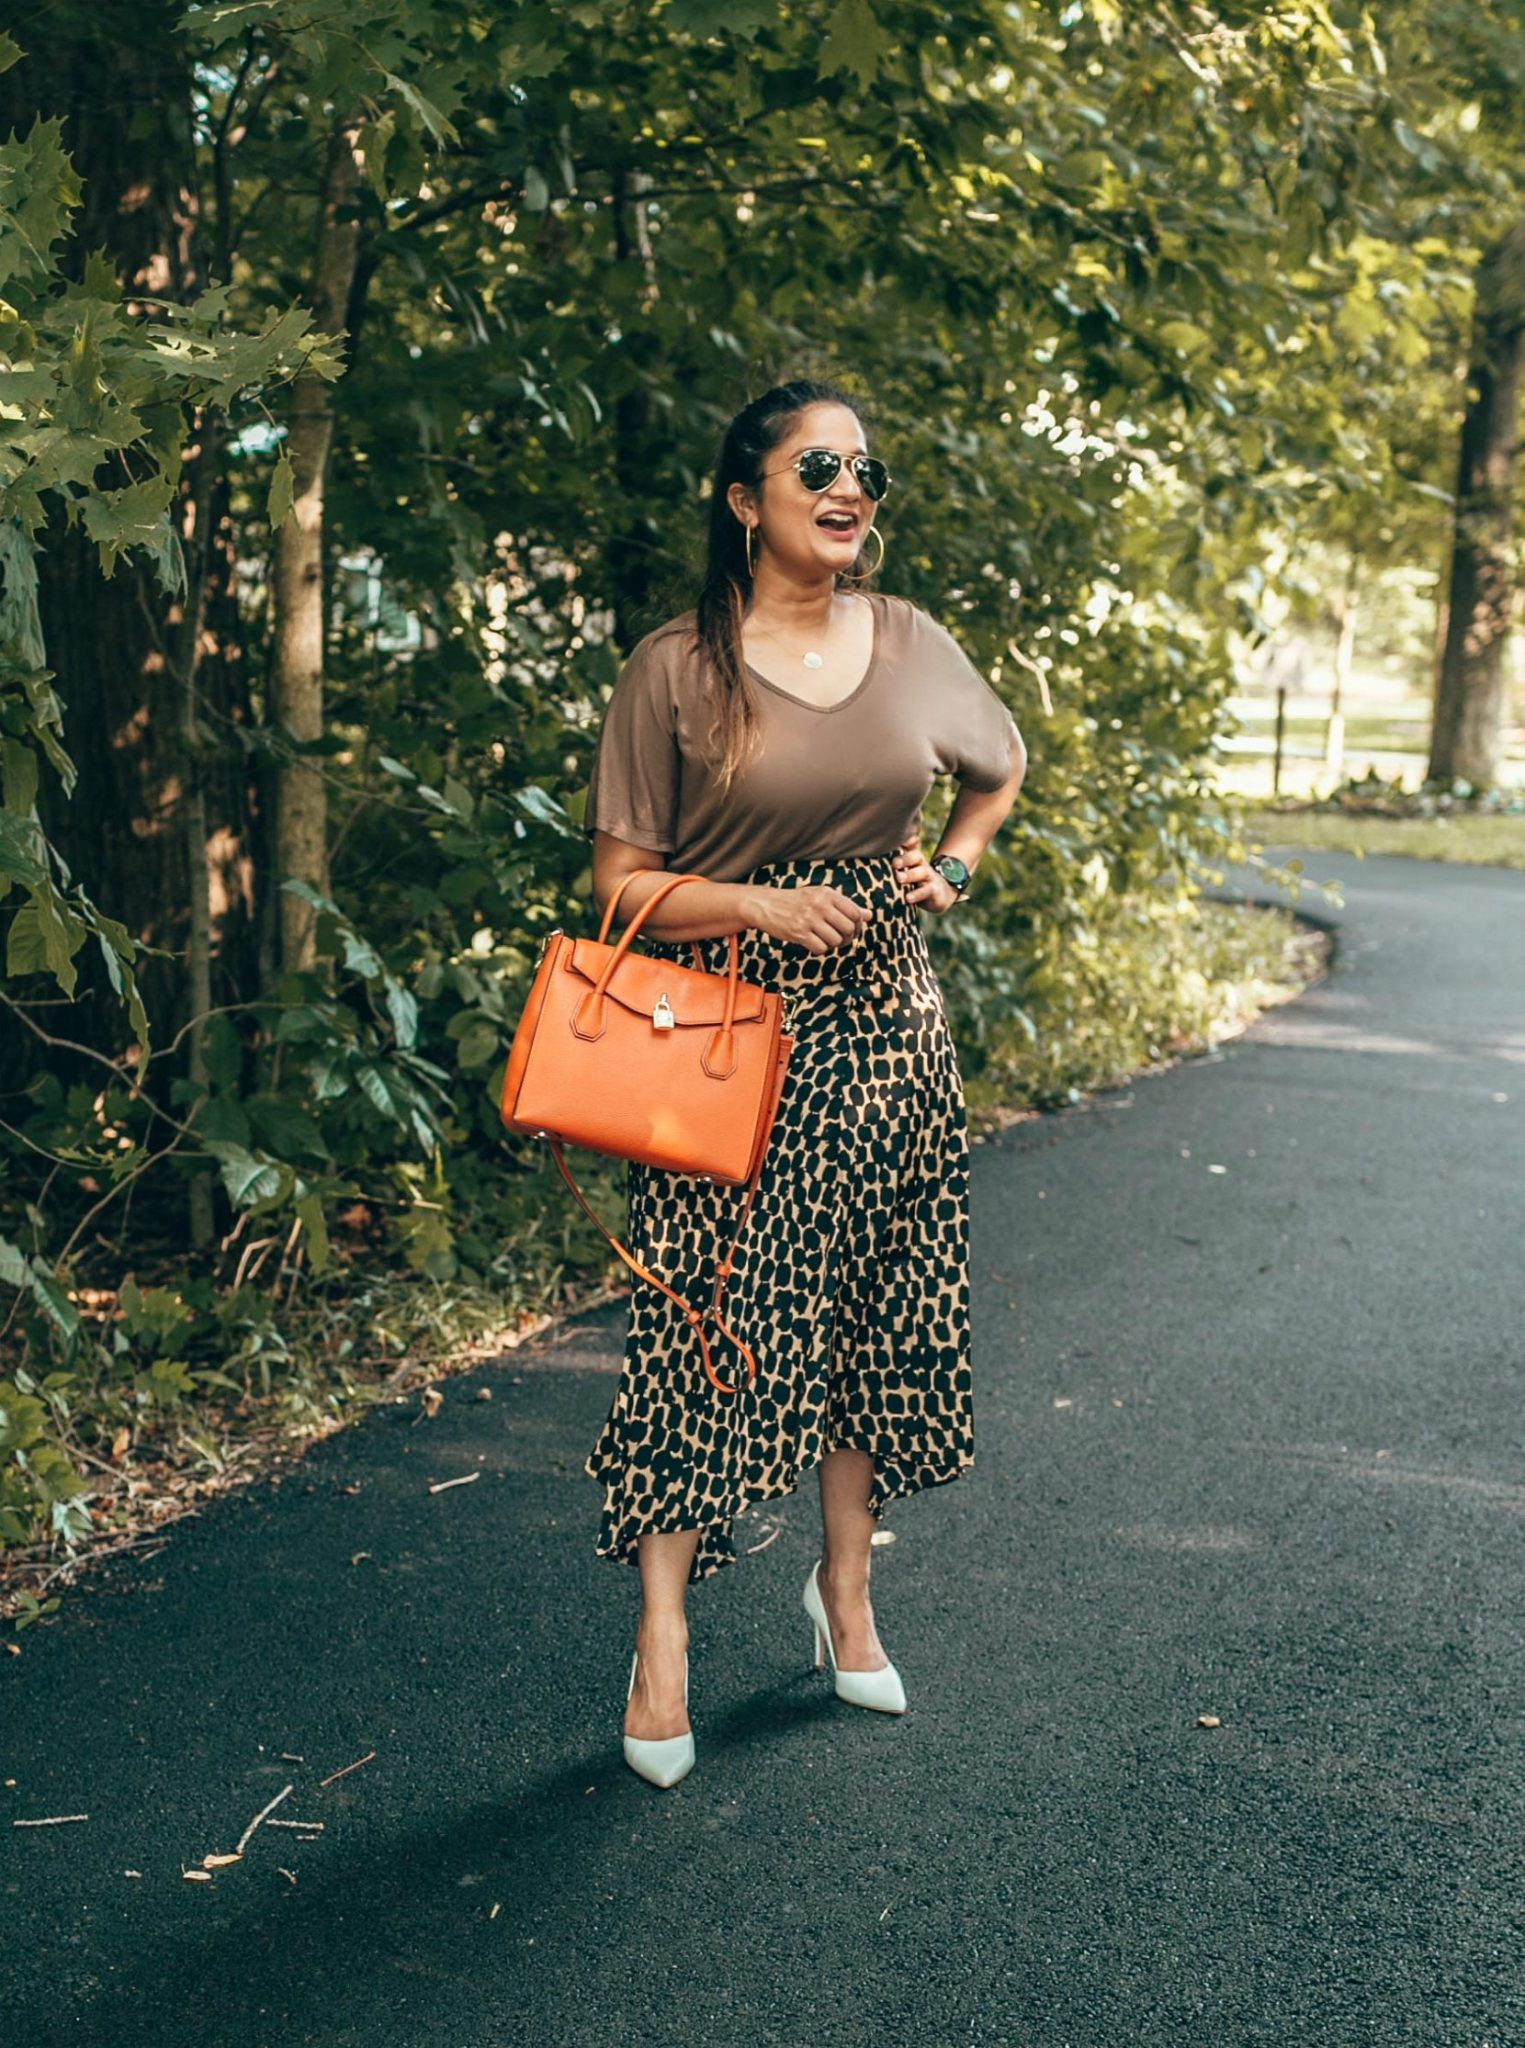 c5ada38d8fbf How to Wear the Leopard Print Trend  12 Outfits Ideas